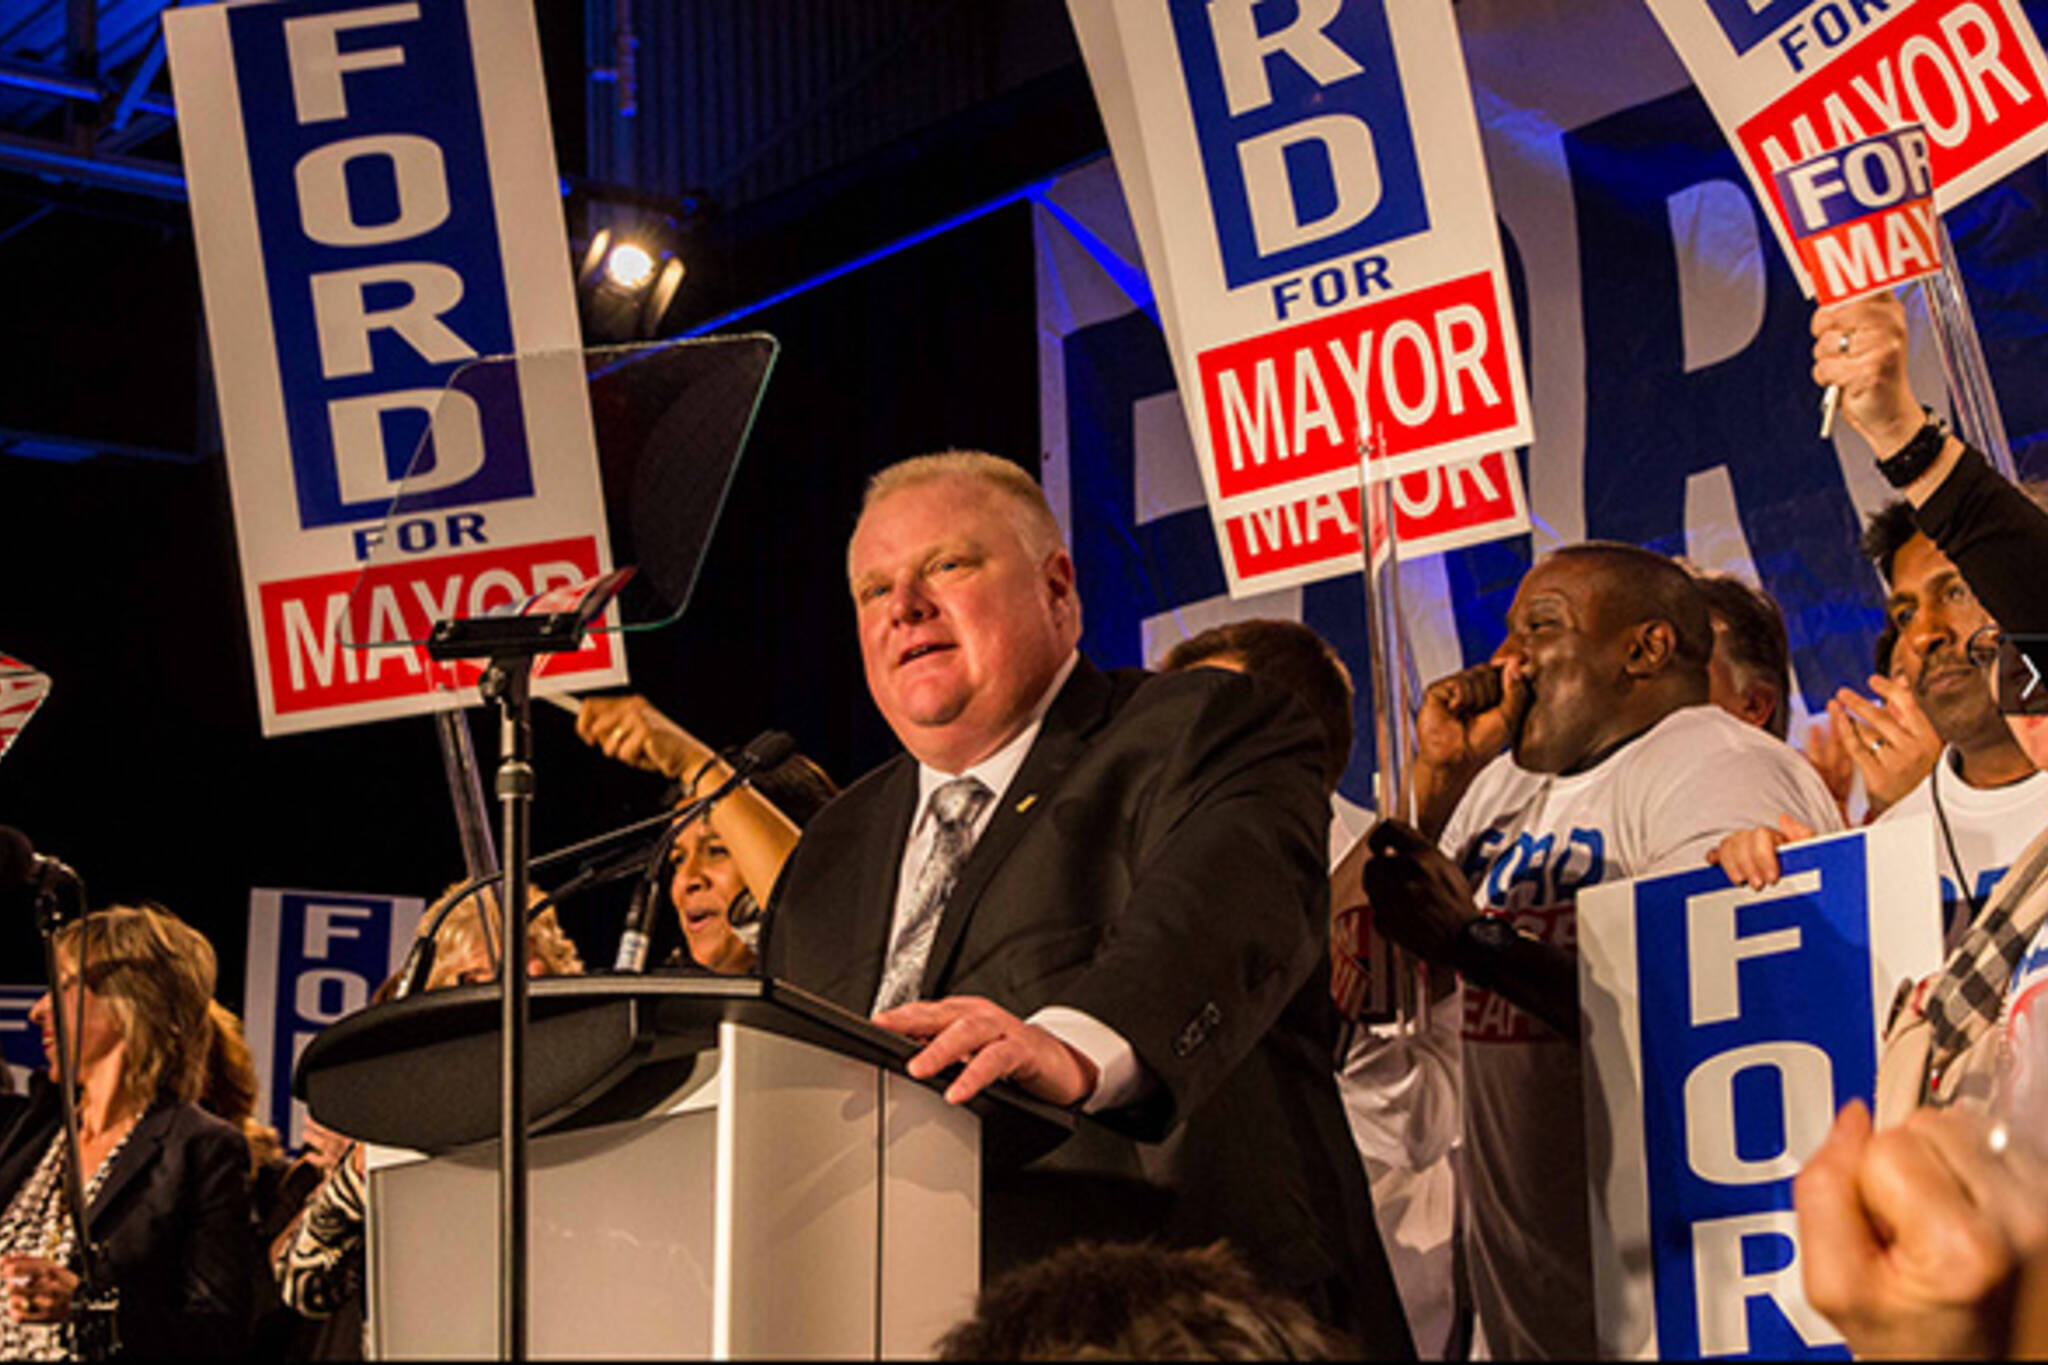 rob ford approval rating